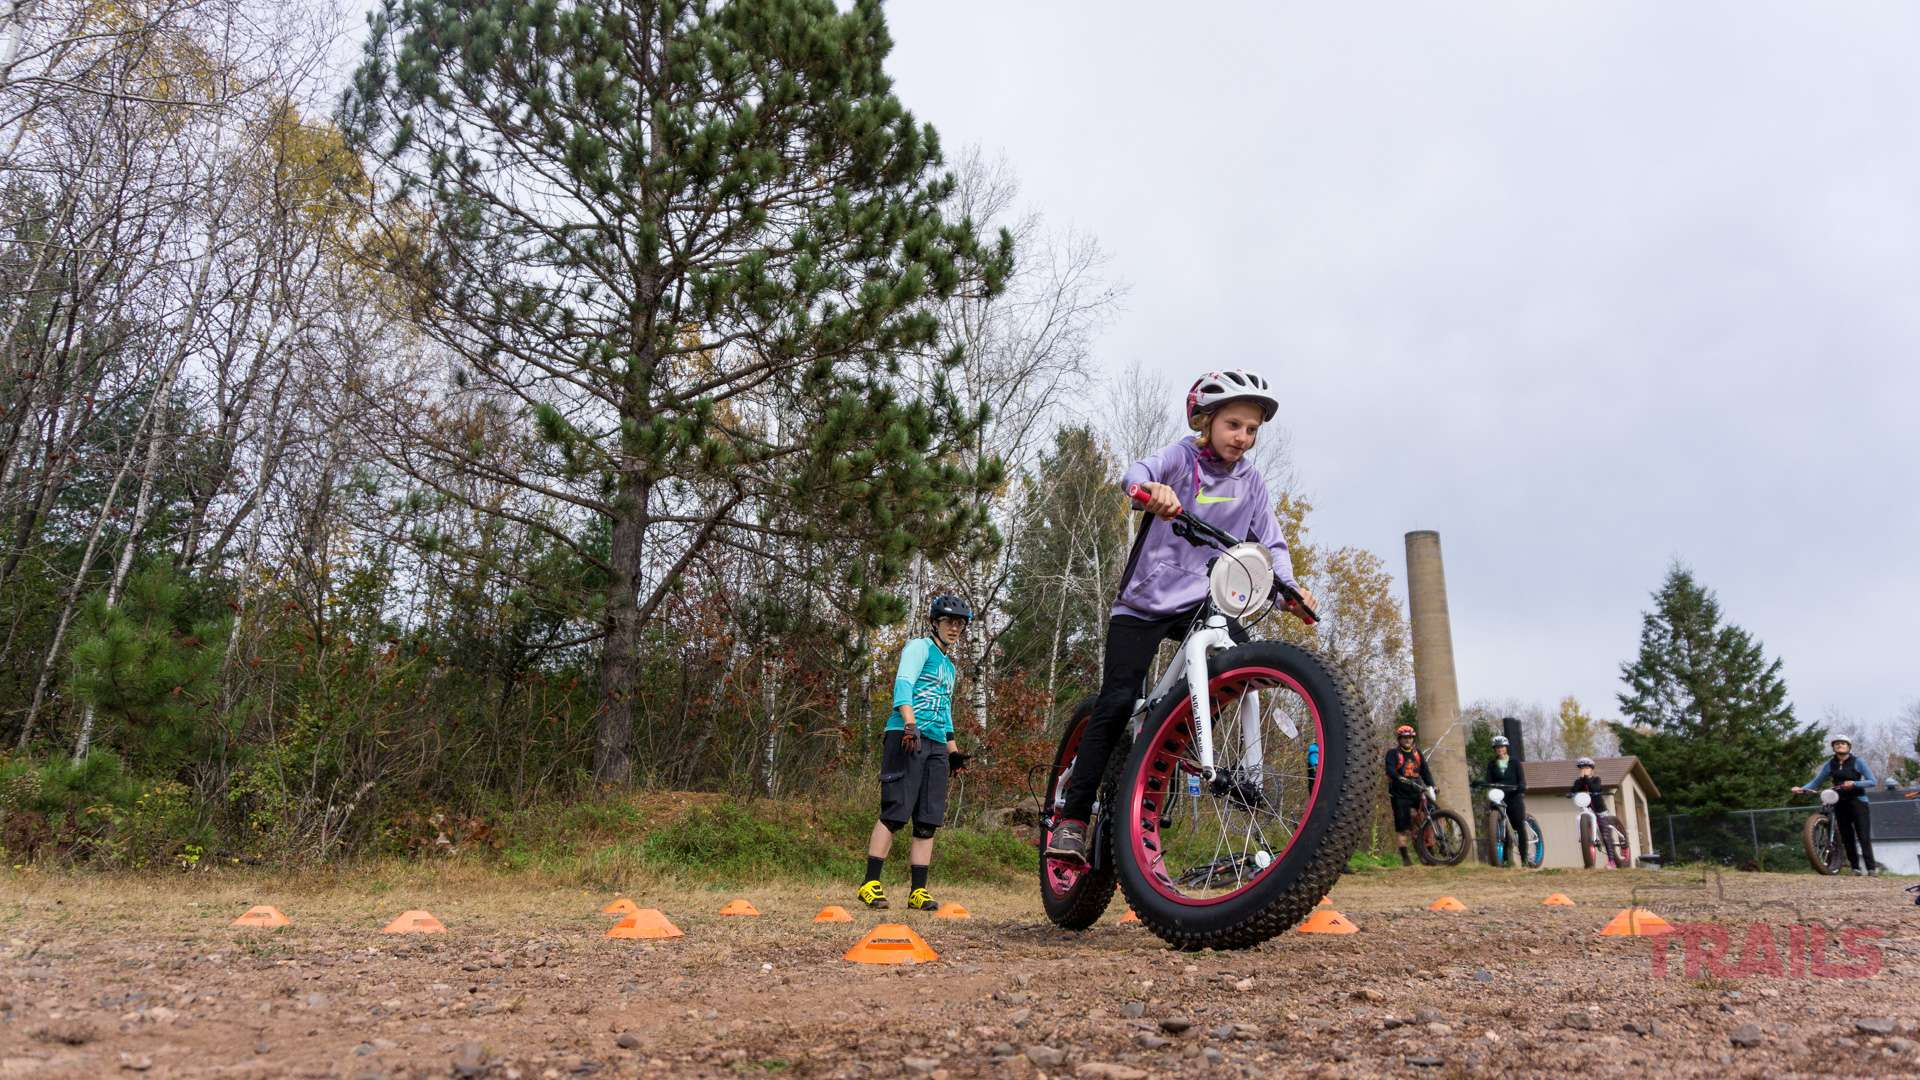 A young girl rides a fat tire bike